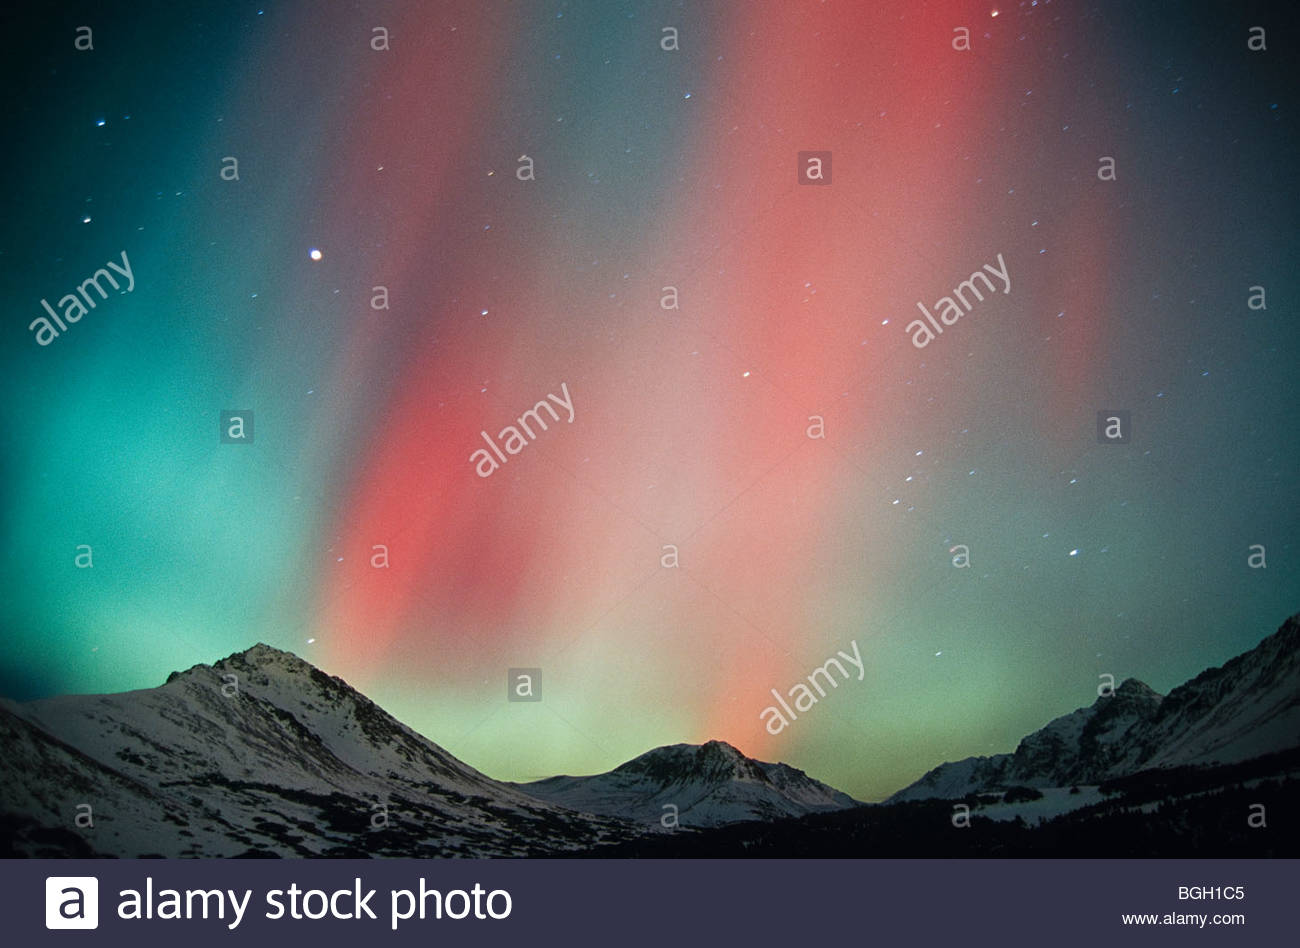 Alaska, Anchorage. Aurora, Chugach Mountains. Immagini Stock